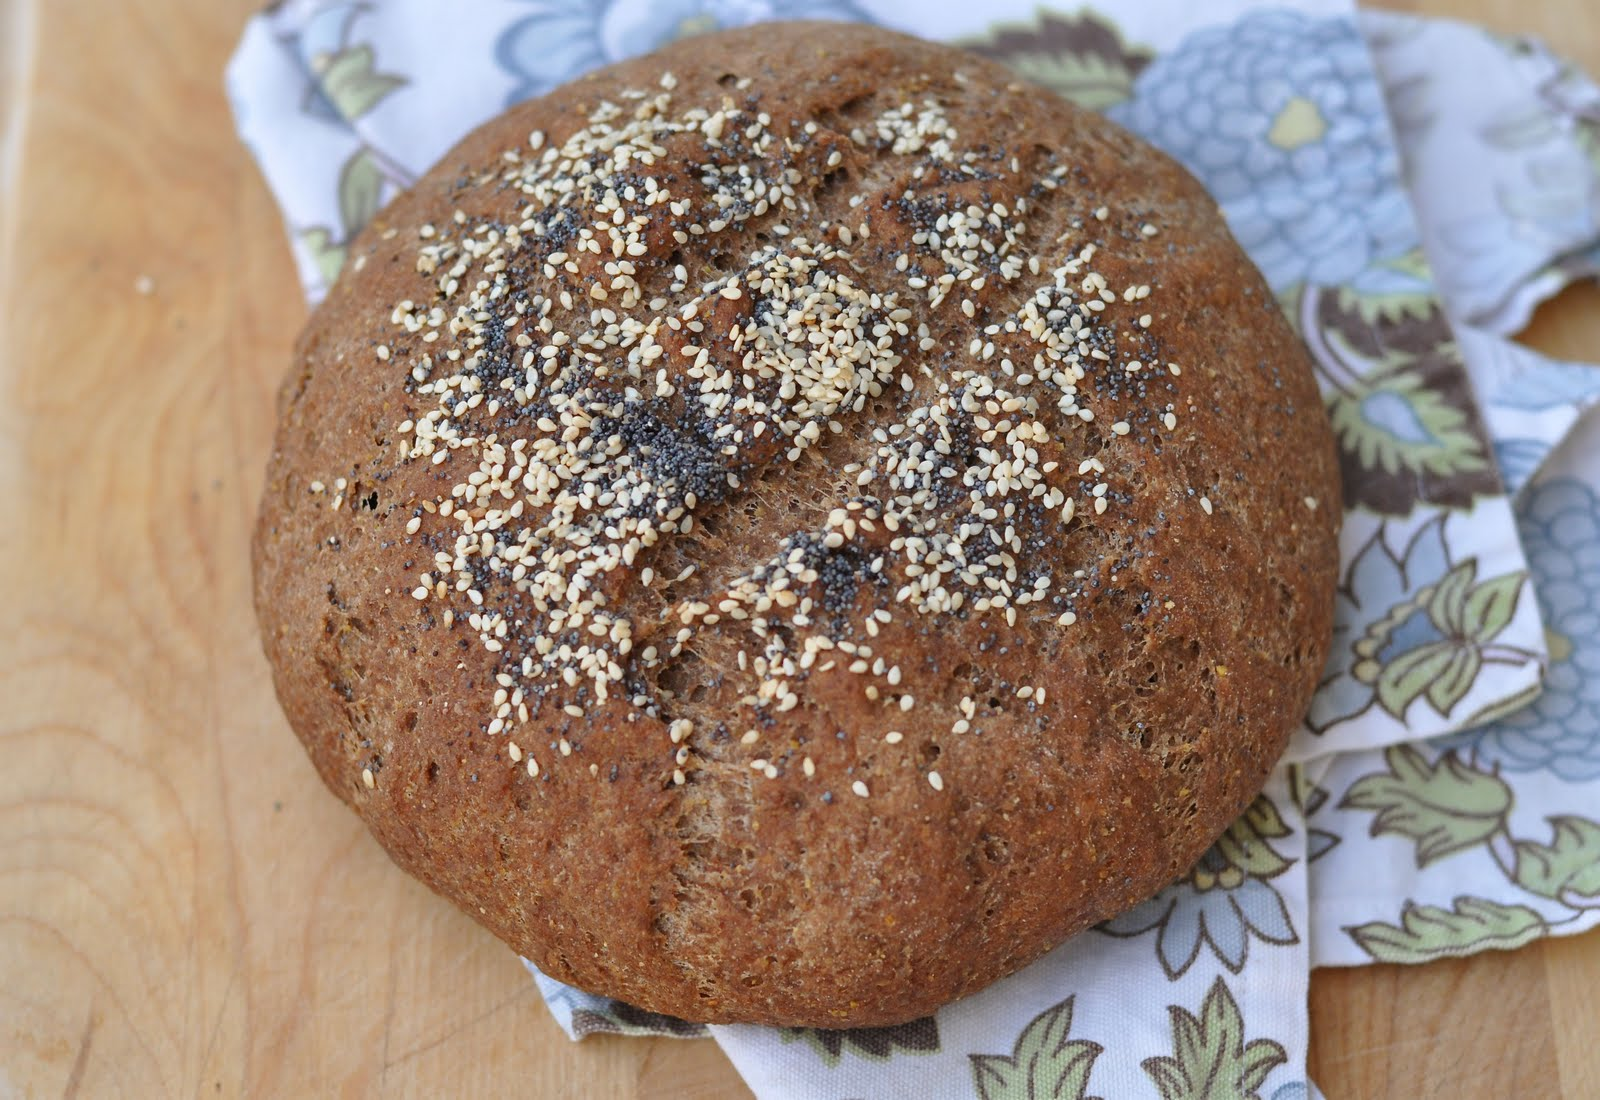 First, be healthy: 3 Gorgeous Gluten Free Bread Recipes